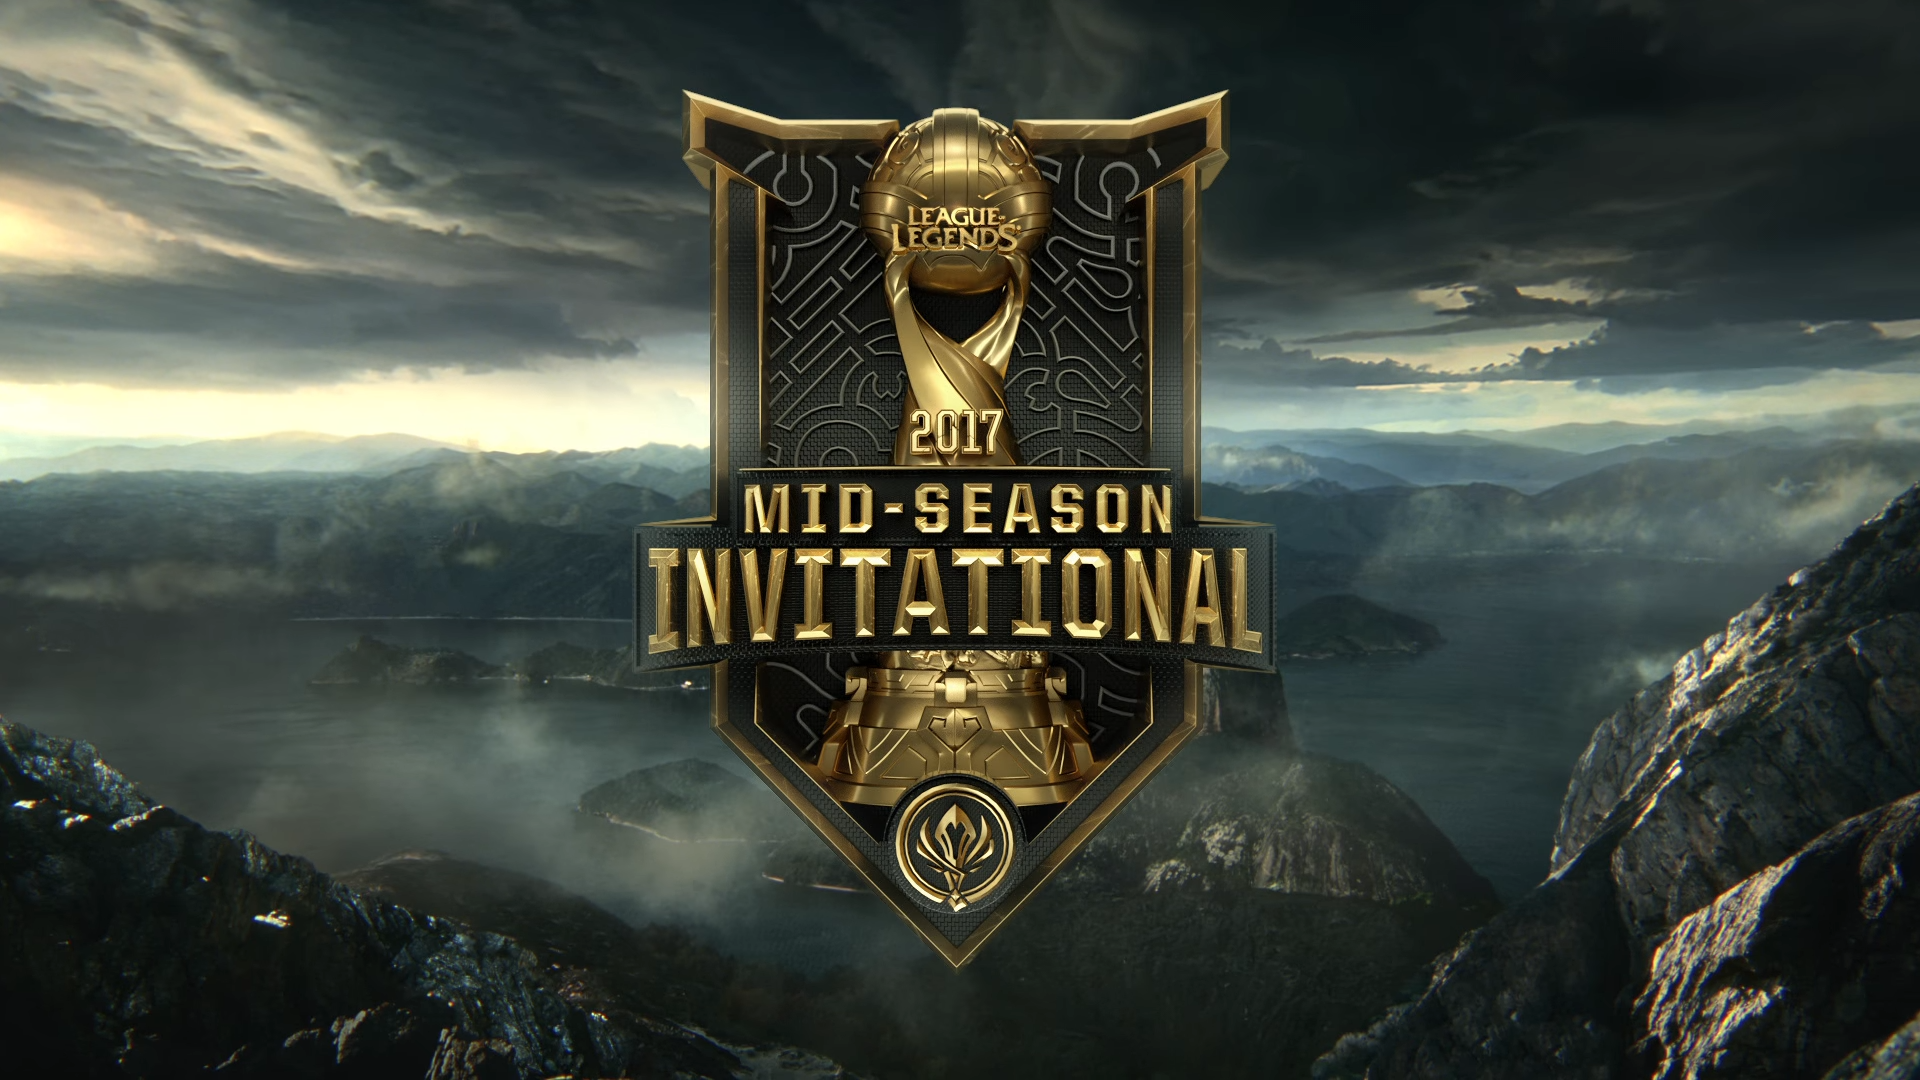 Mid-Season Invitational 2017 wallpaper